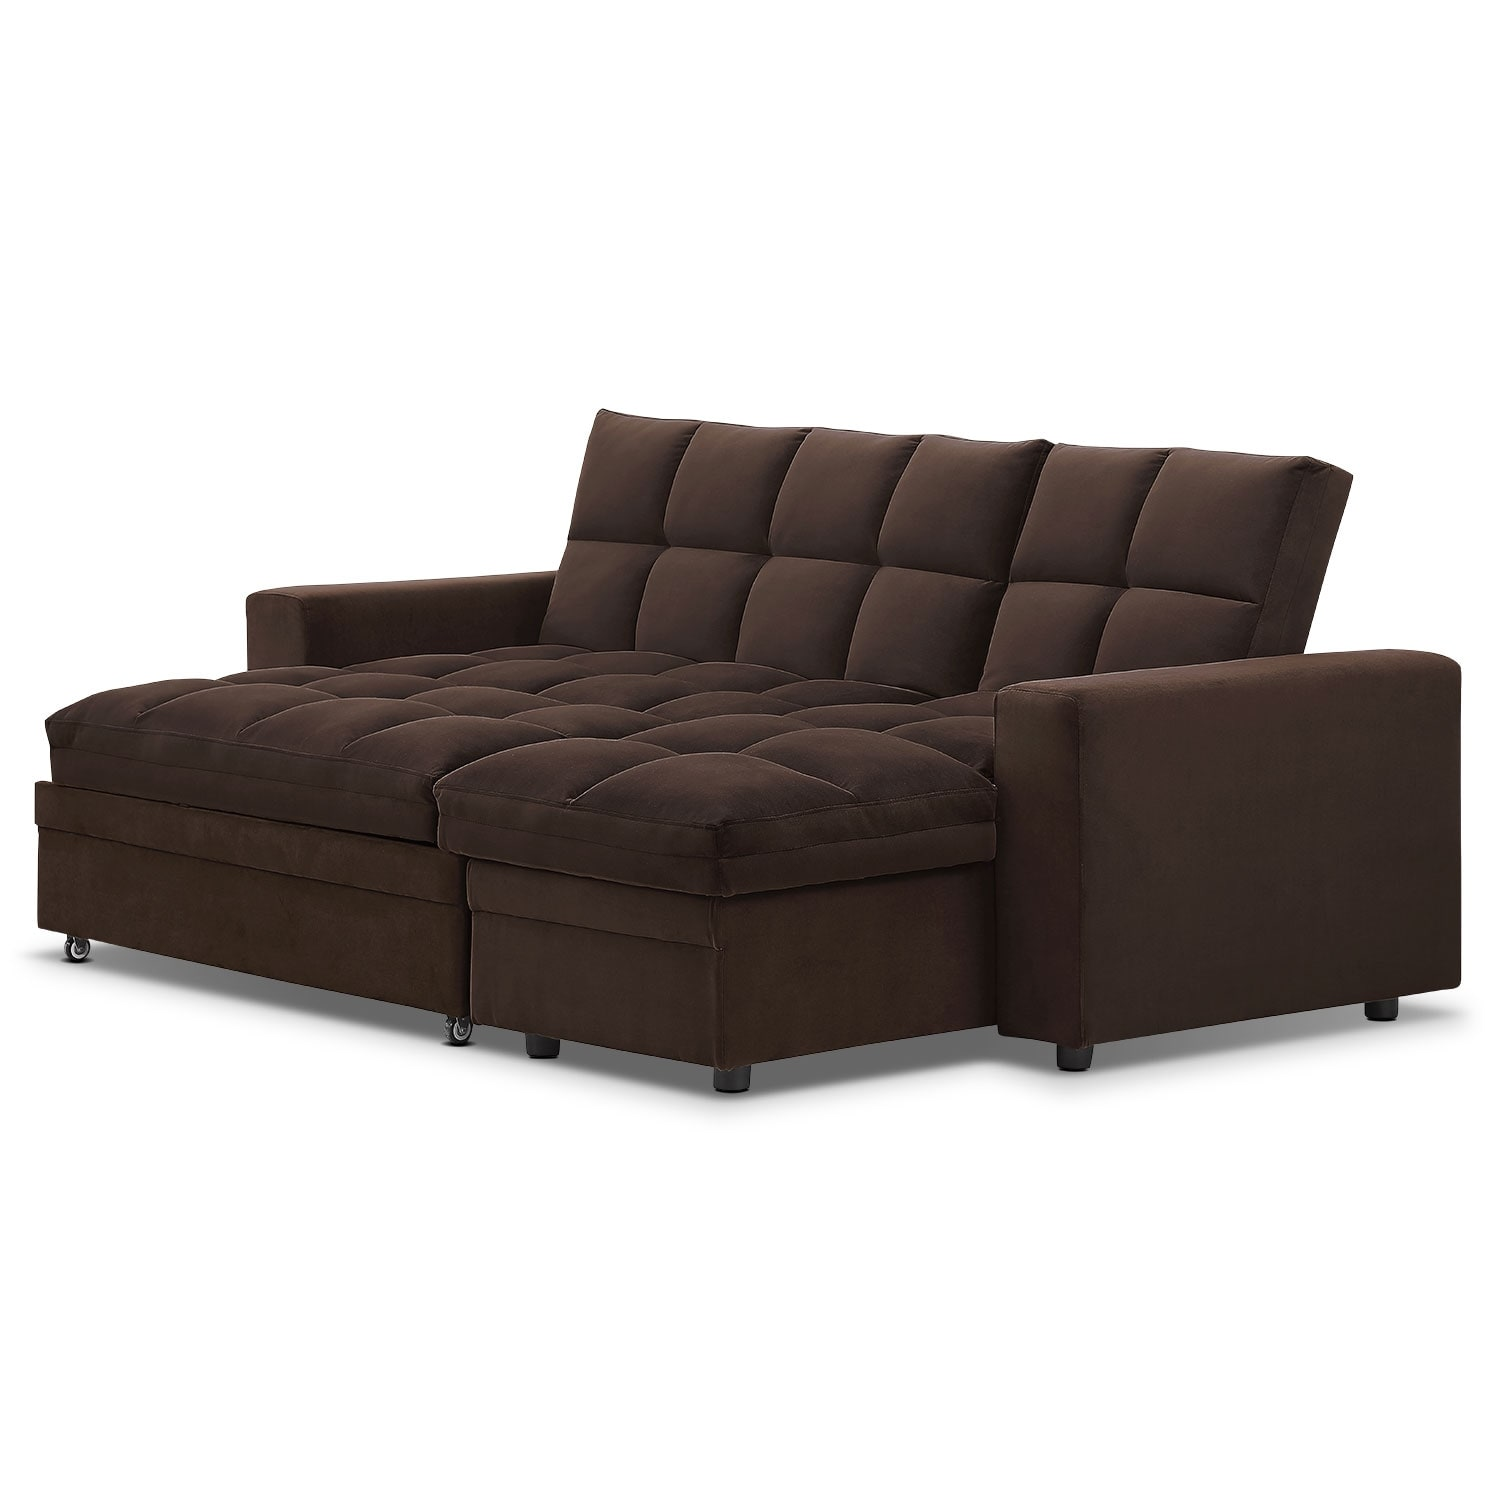 Metro Chaise Sofa Bed With Storage Brown Value City Furniture